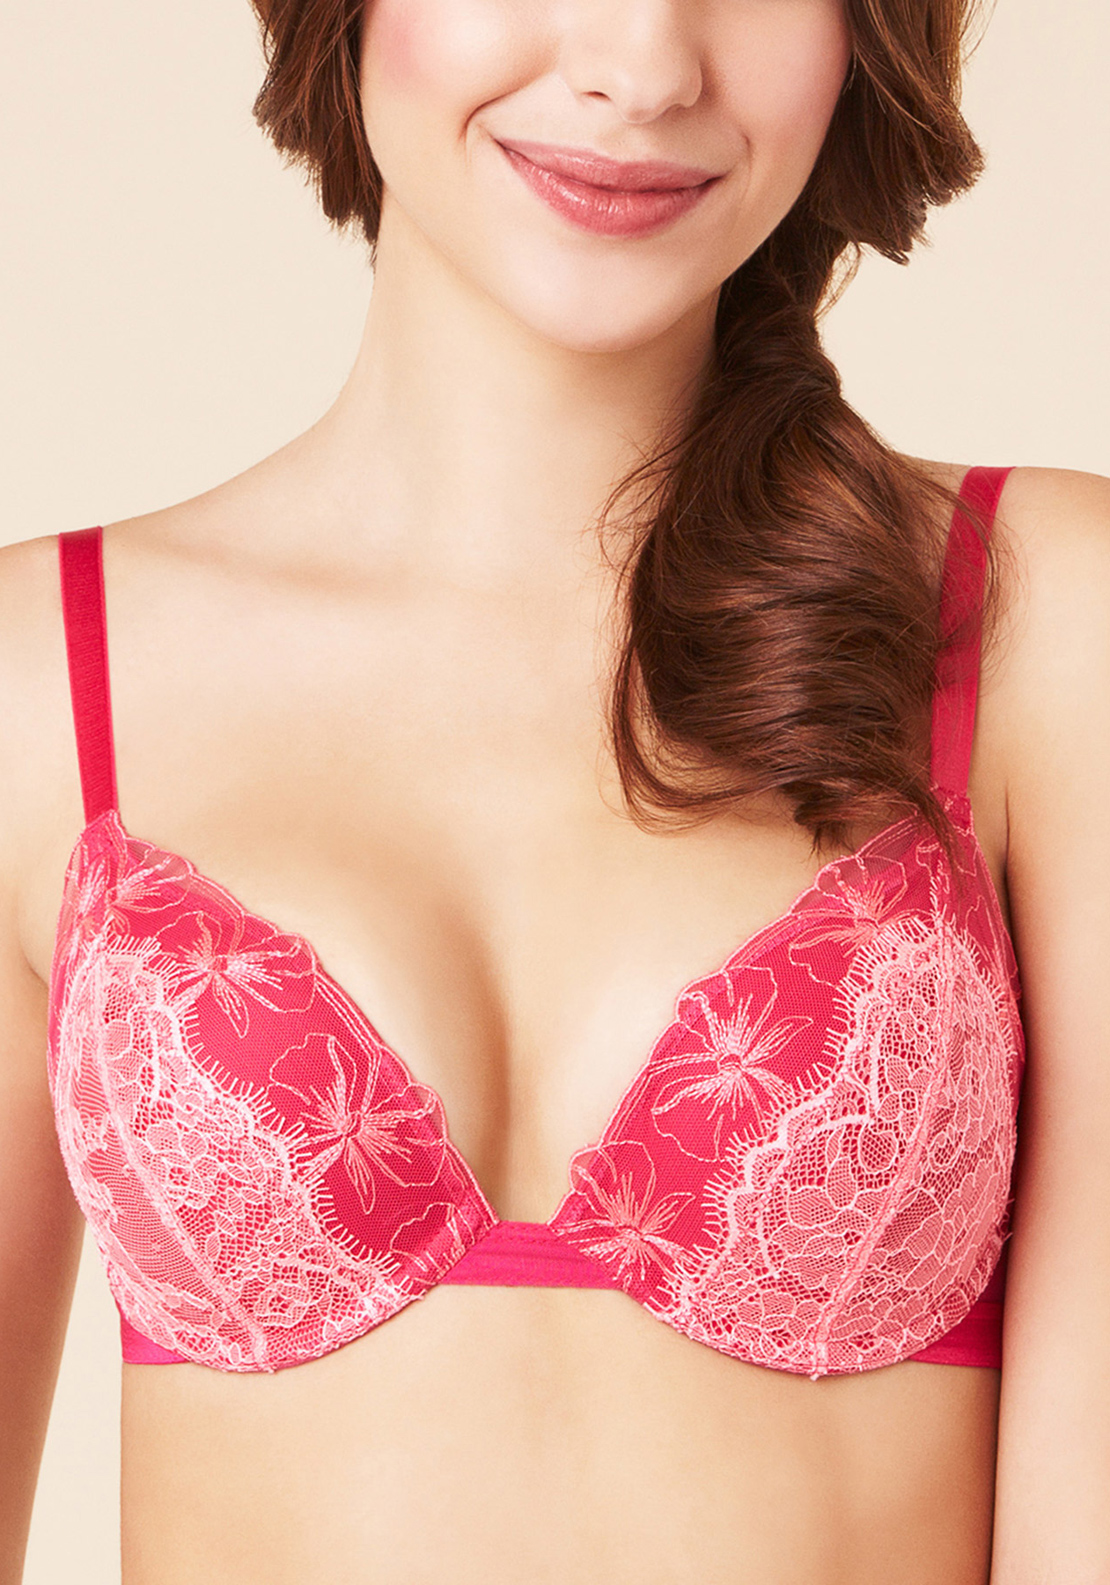 Passionata Double Je Push Up Bra, Raspberry